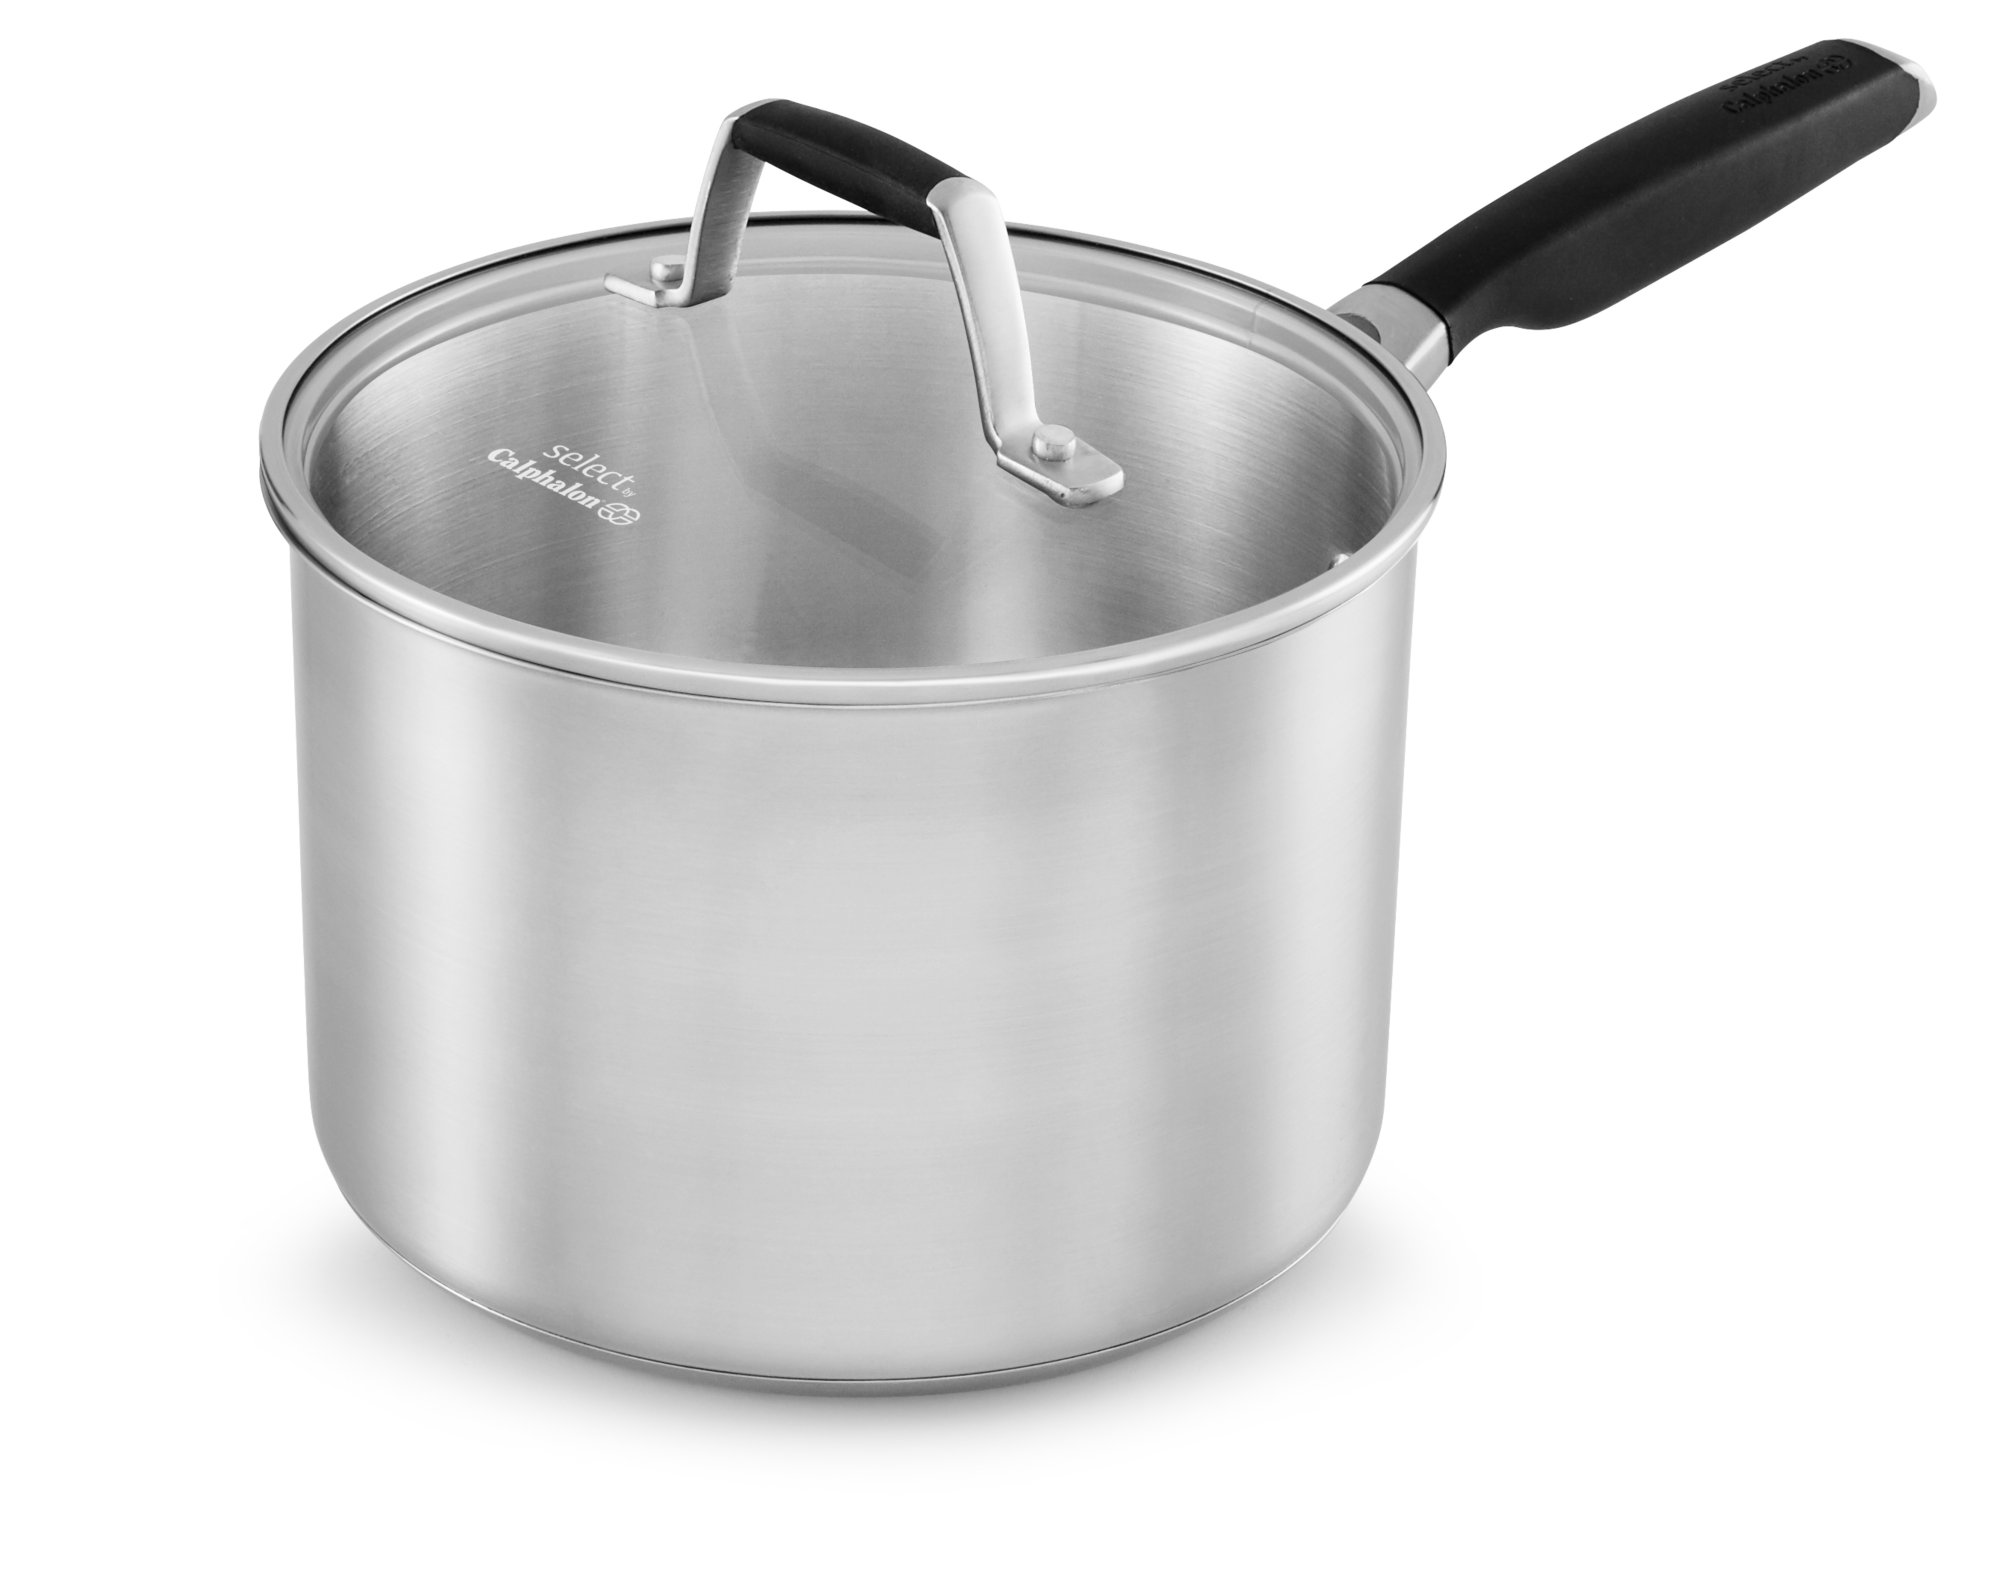 Select by Calphalon Stainless Steel 3.5-Quart Saucepan